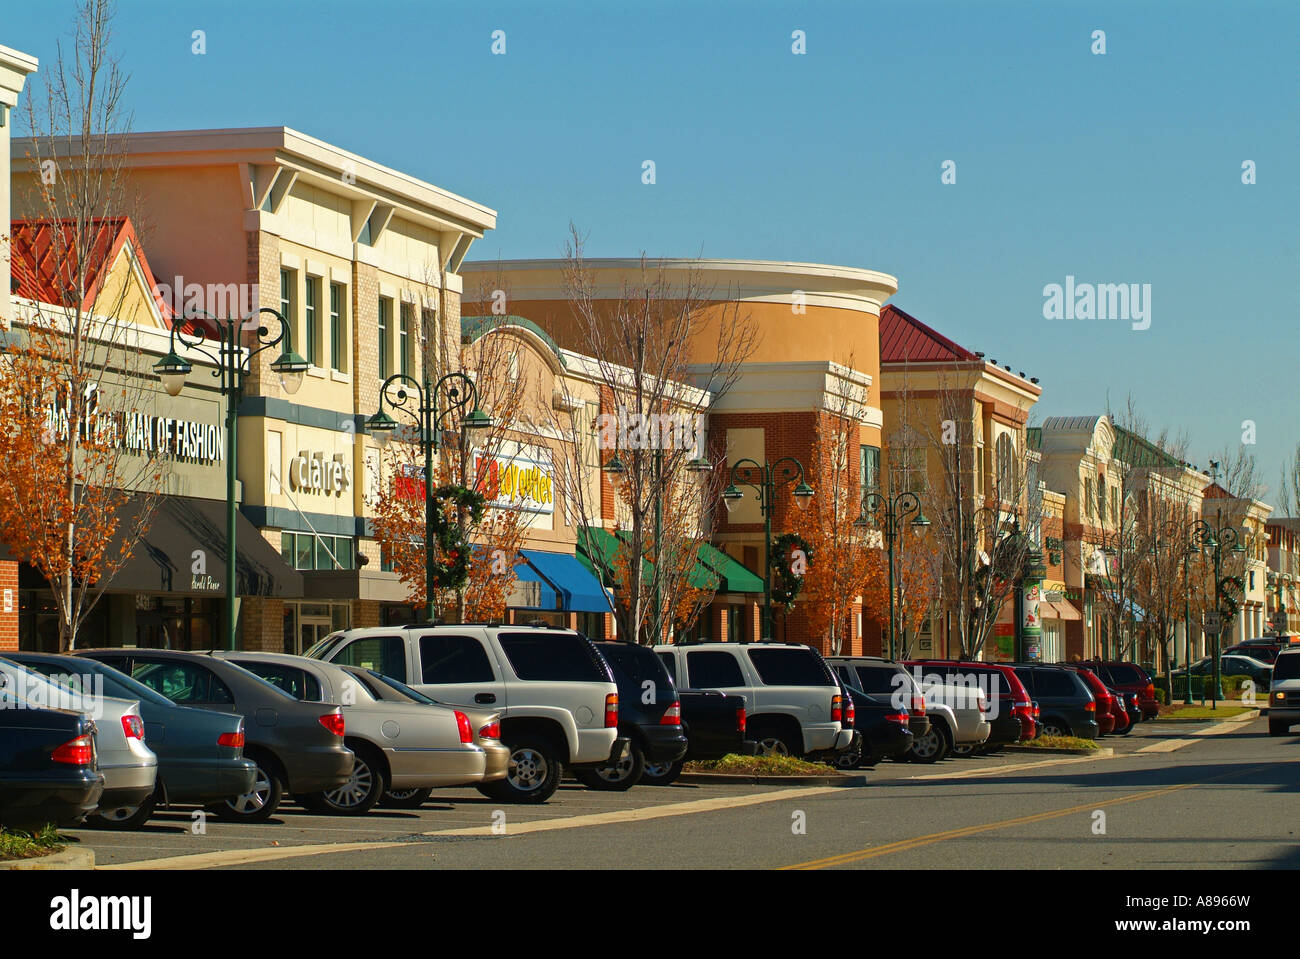 usa-maryland-bowie-town-center-shopping-mall-A8966W.jpg